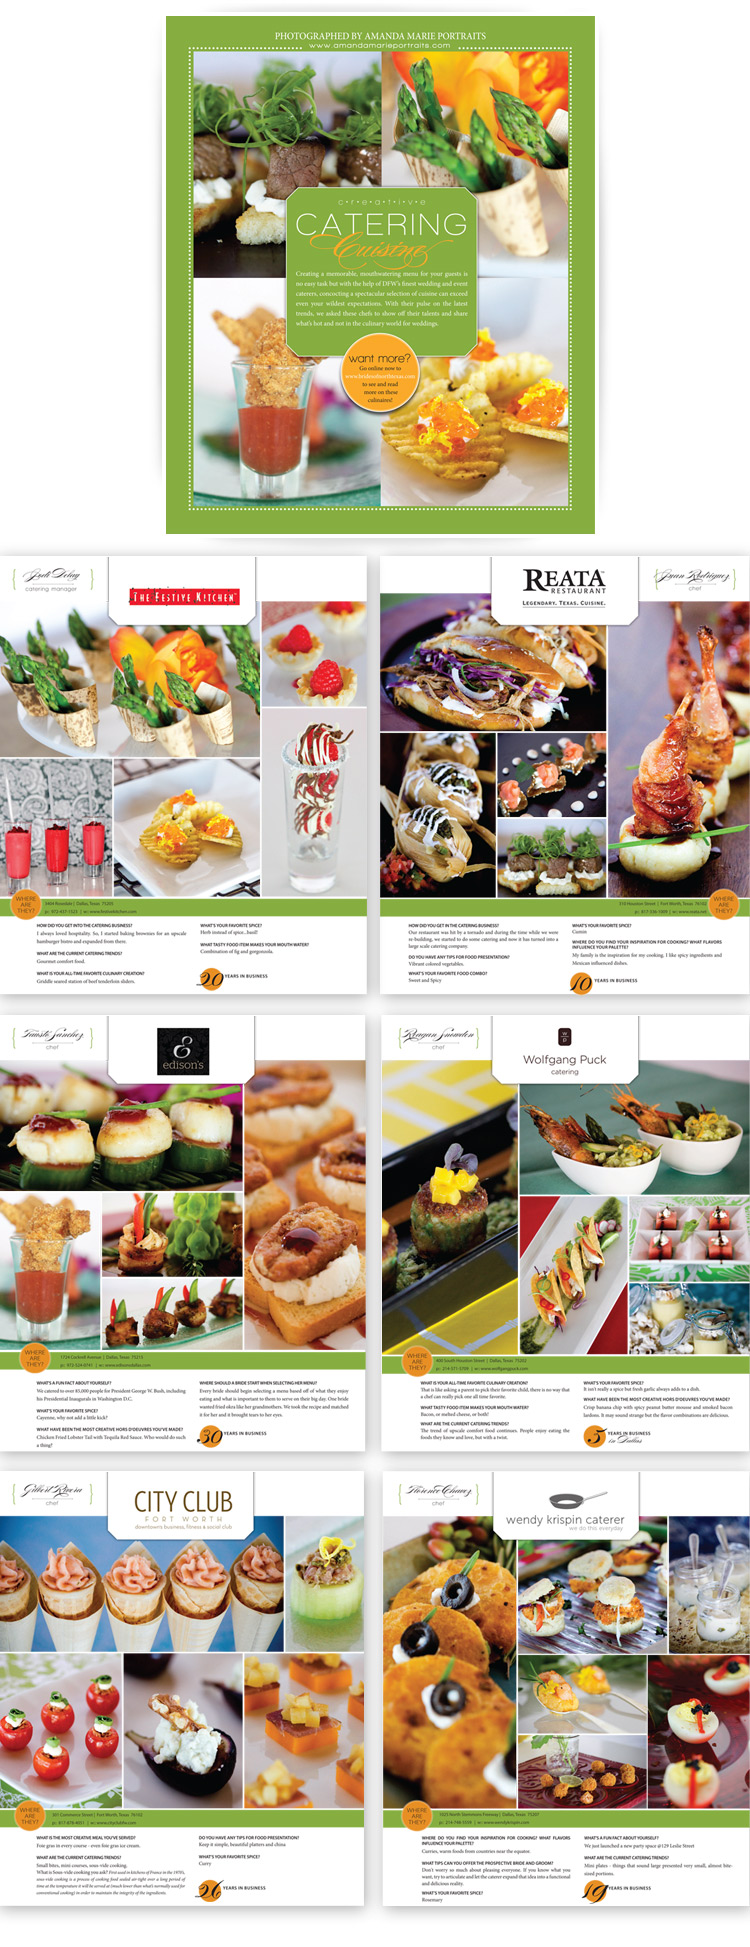 North Texas wedding caterers - Dallas, Fort Worth